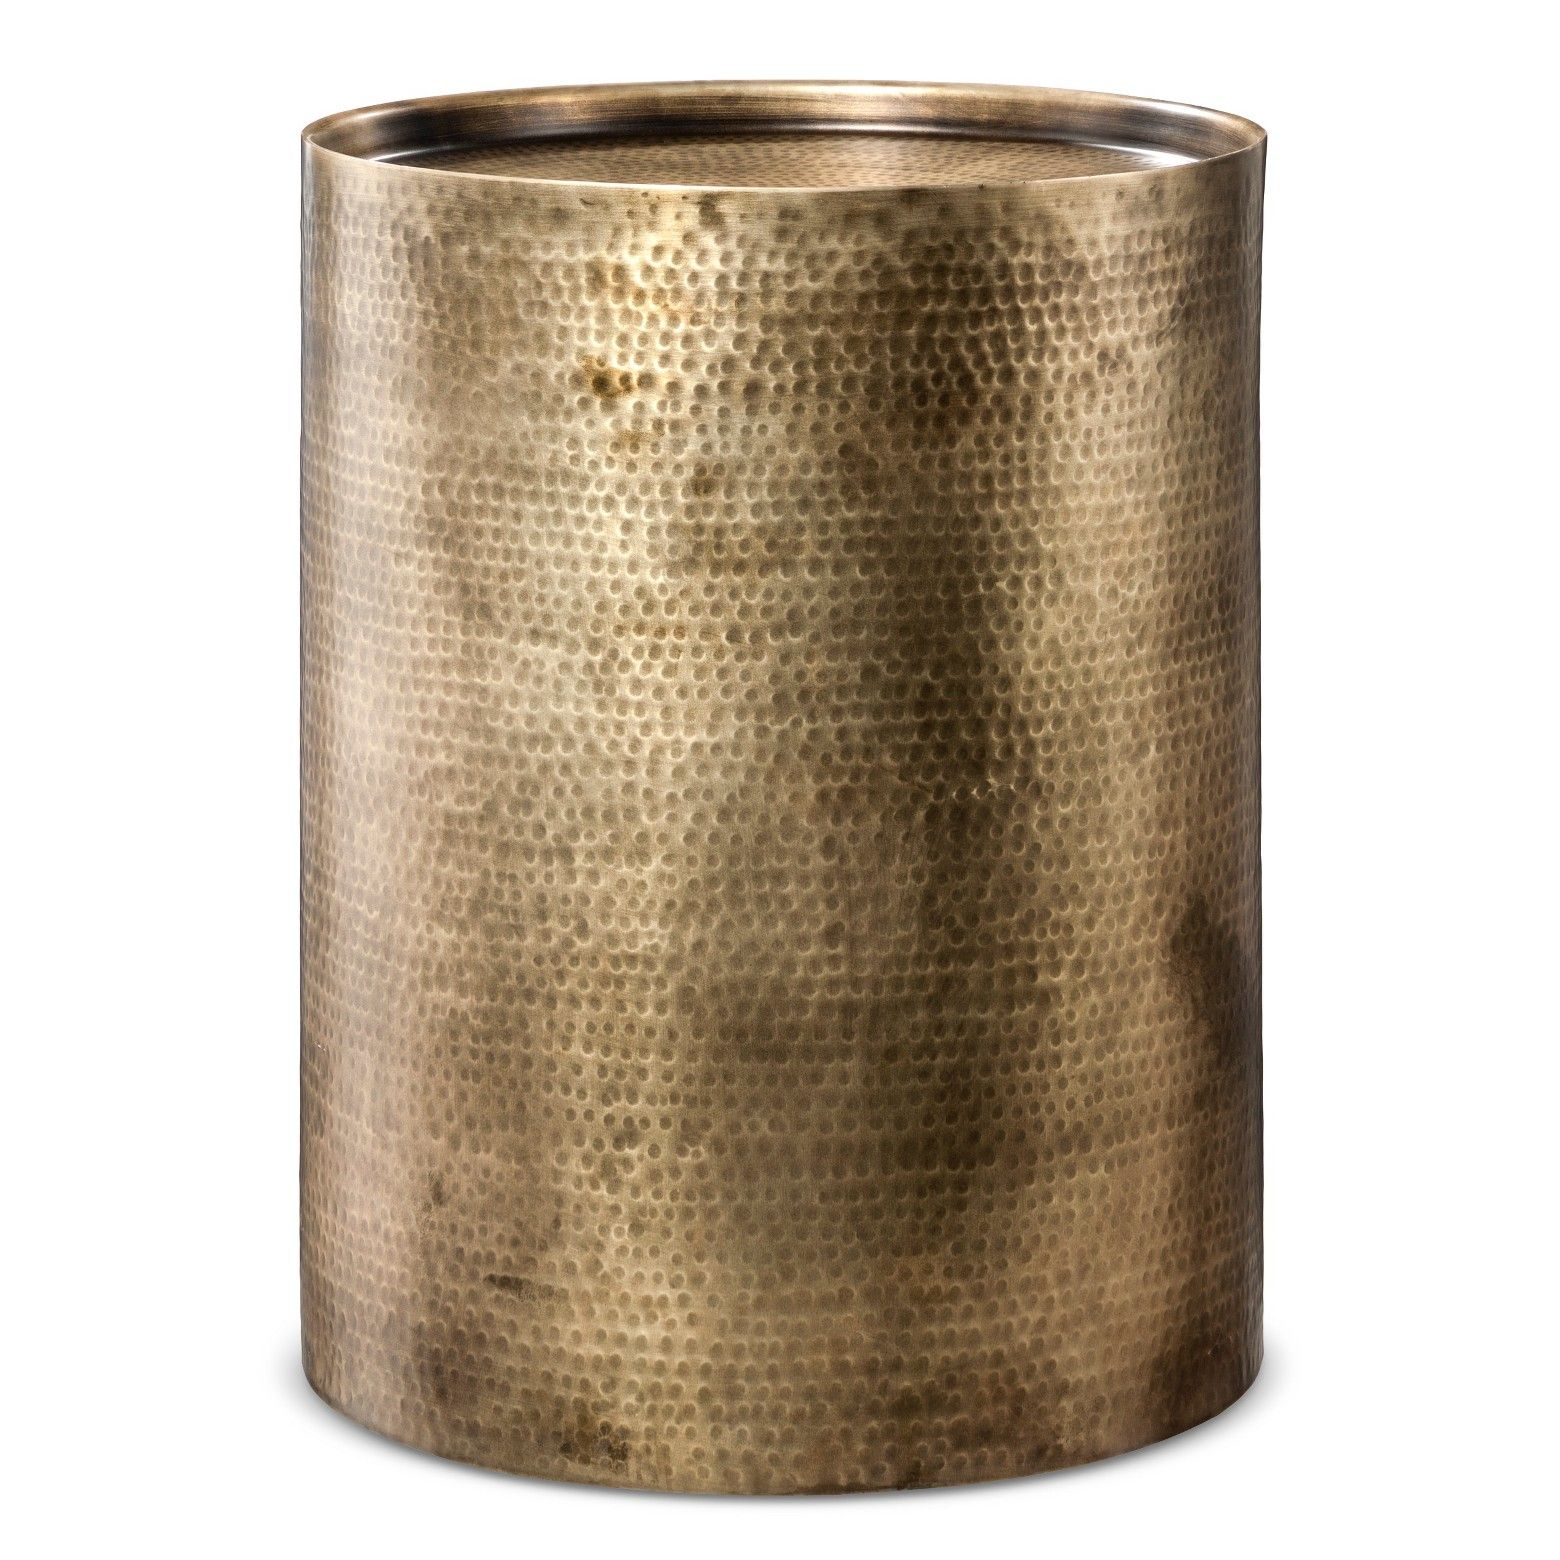 bull metal accent table with polished silver finishbrbull nail brass drum hammered for textured feelbrbrthe granby cylinder outside patio chairs crystal base lamp west elm console